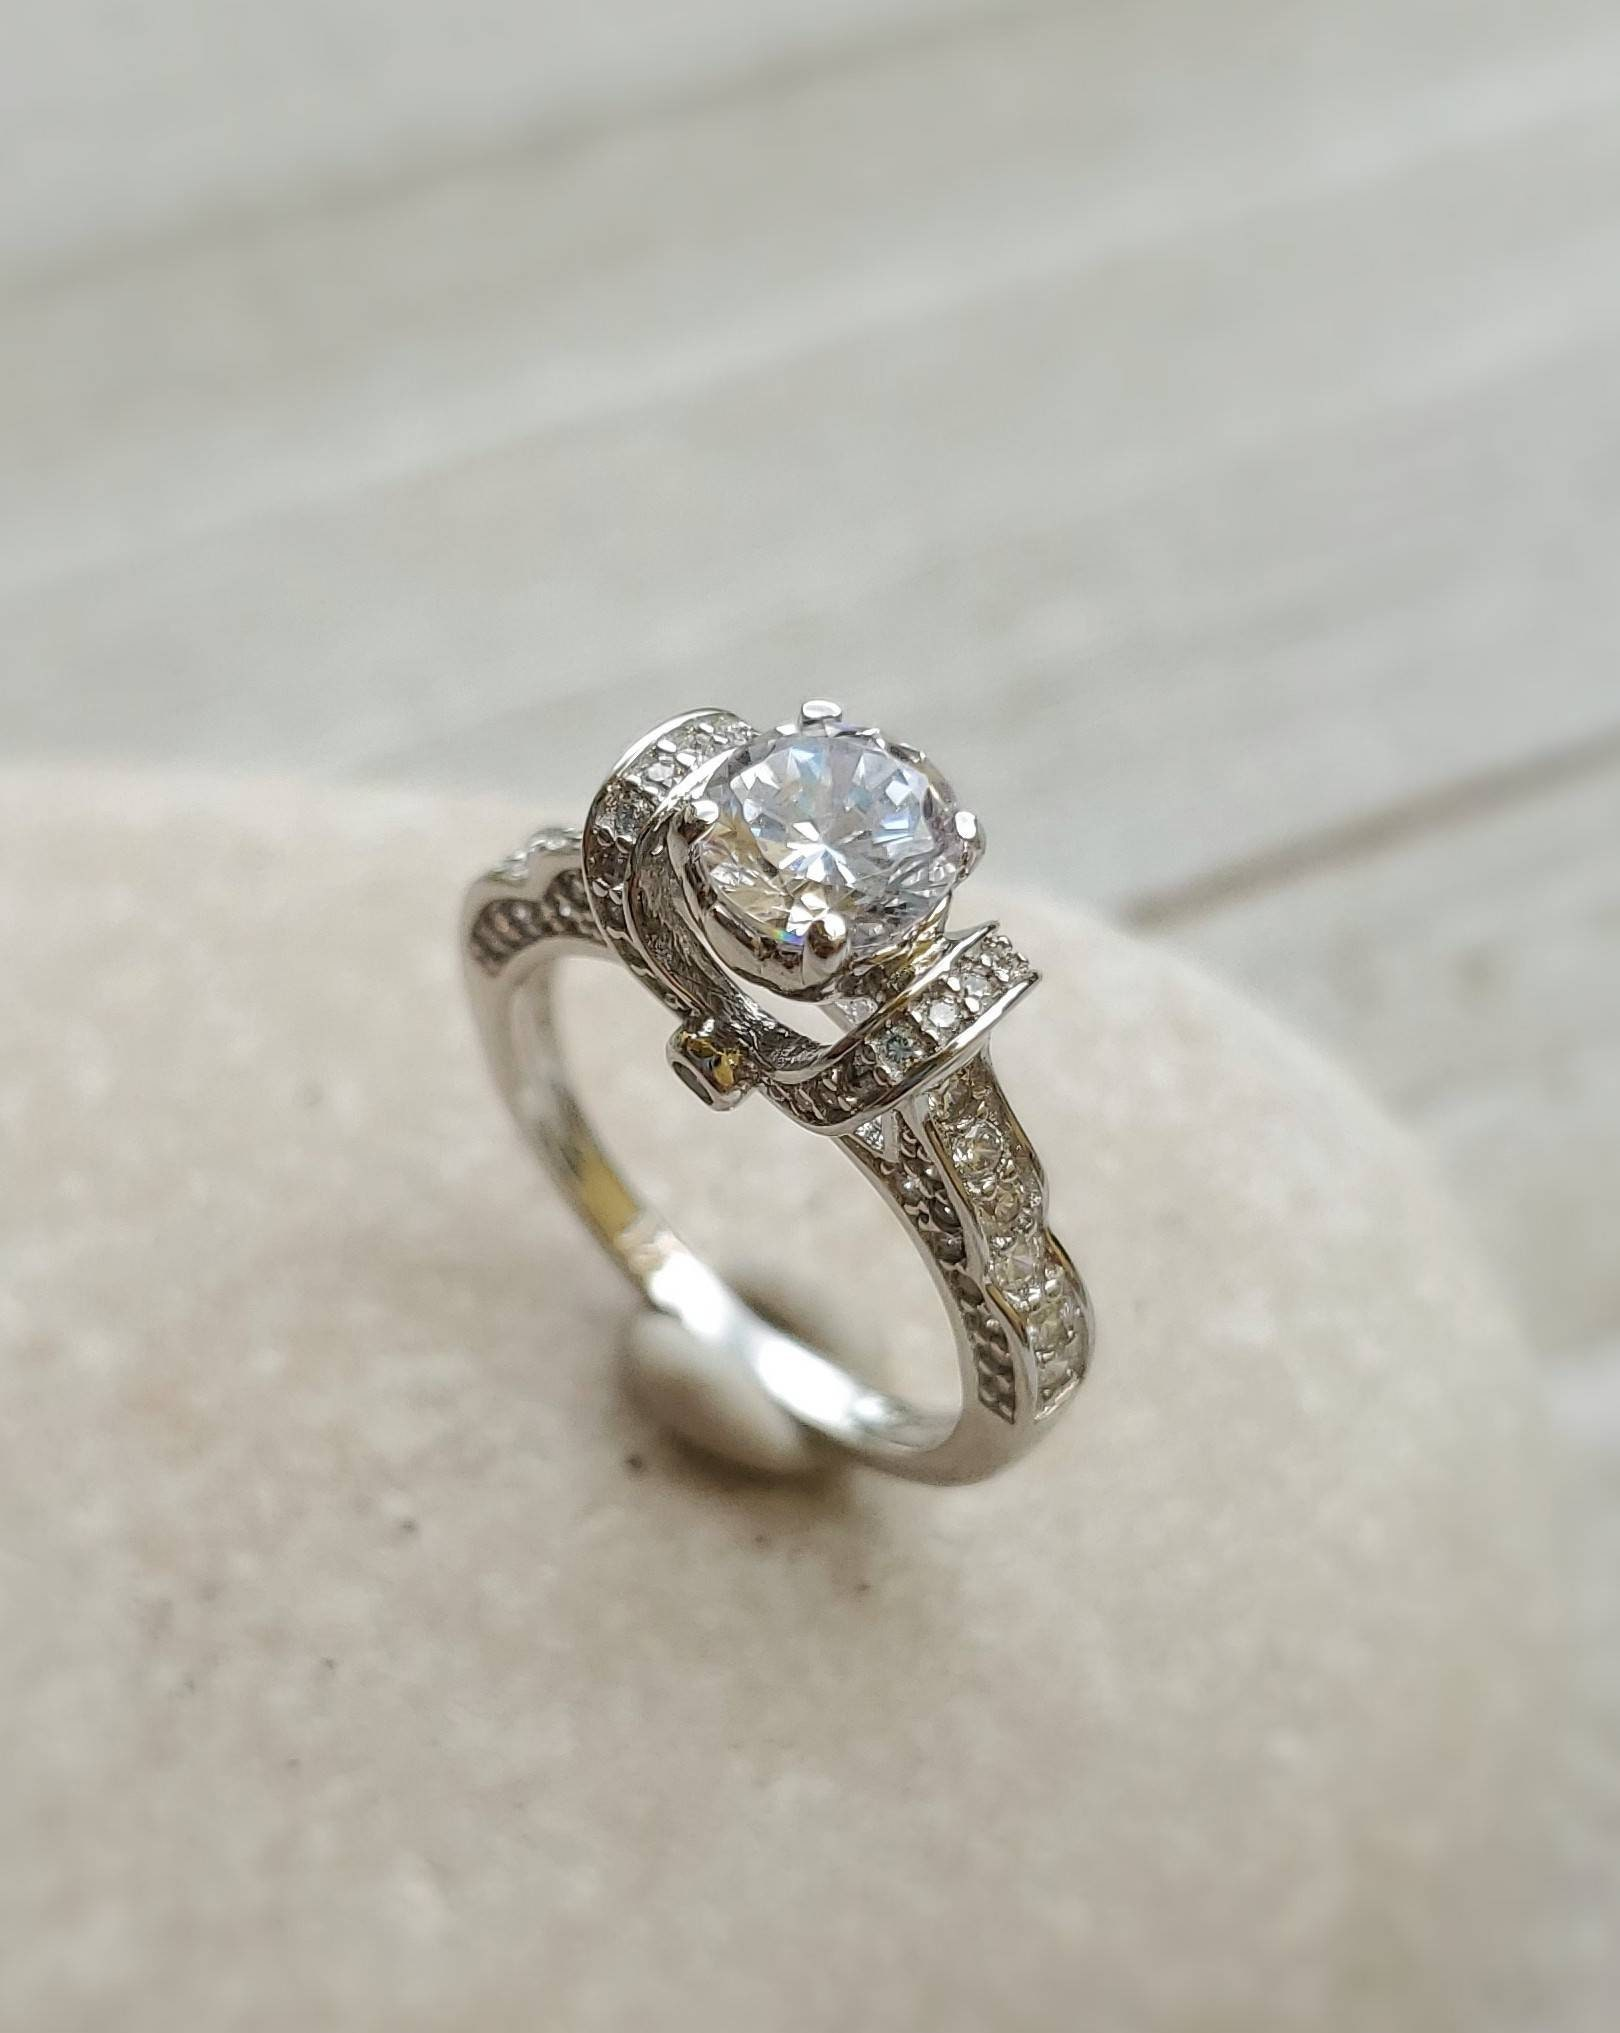 ISTERLING SILVER 925 ROUND CUT CZ ENGAGEMENT RING SIZE 8